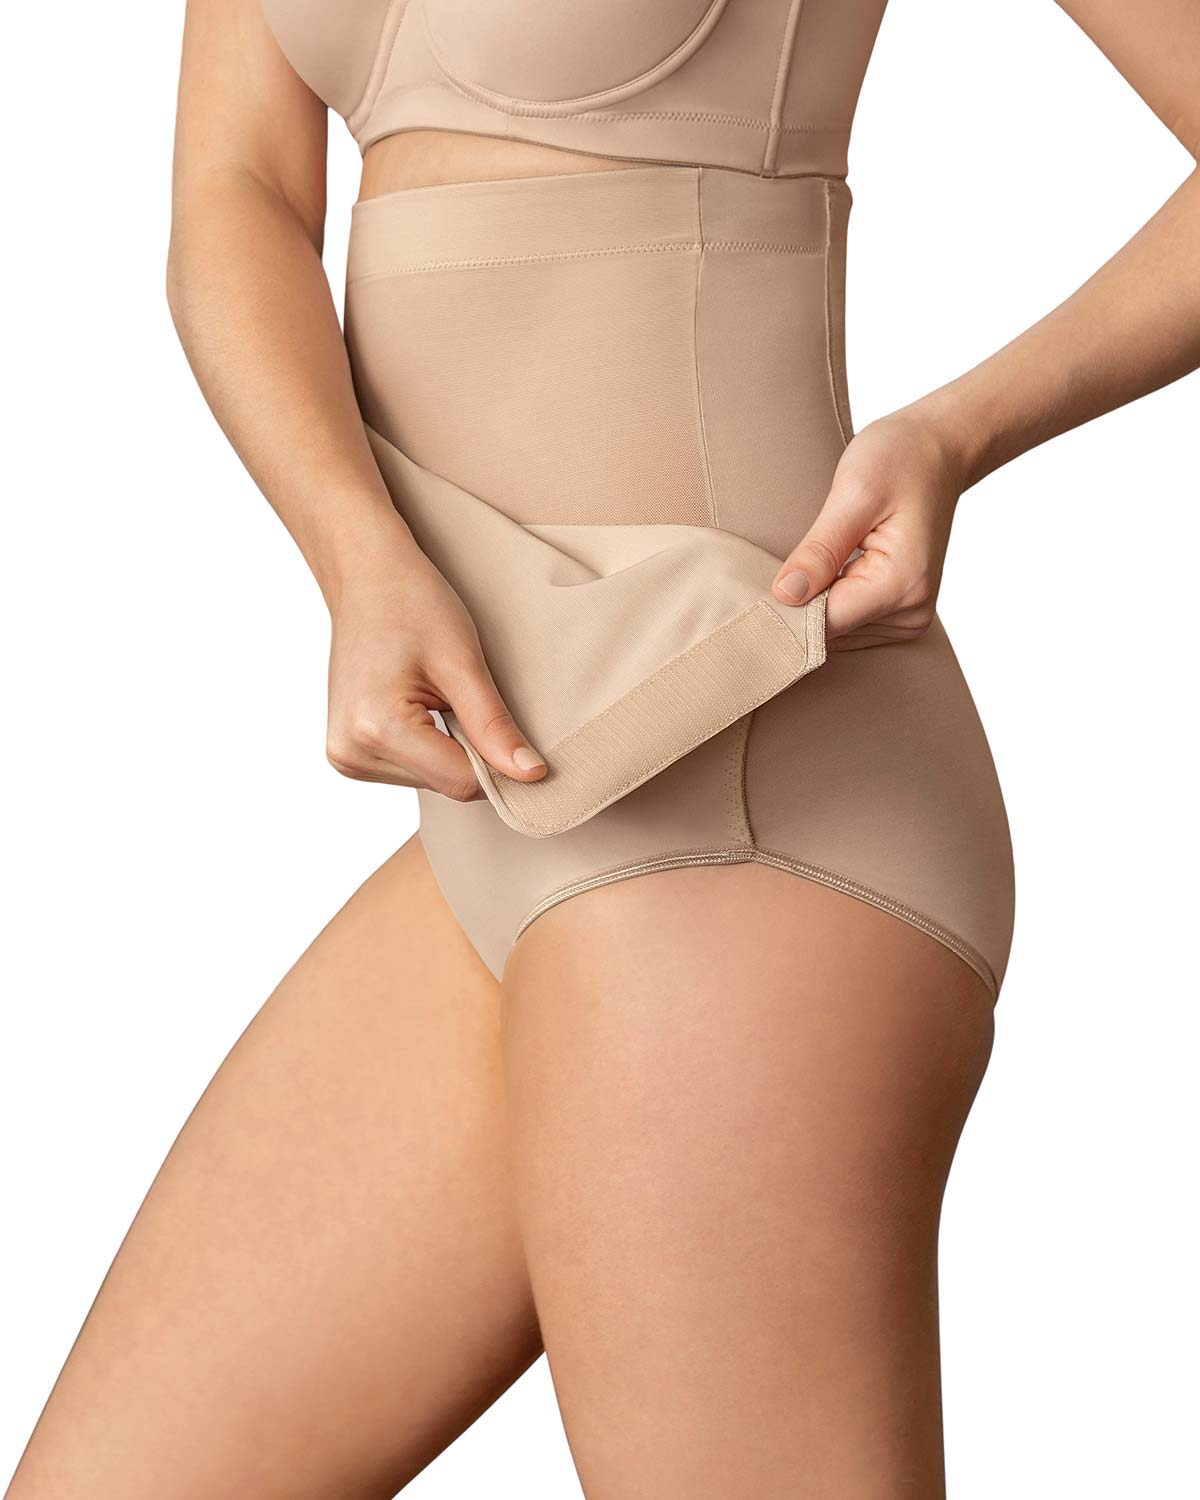 Post-Surgical Velcro Closure Firm Compression Panty